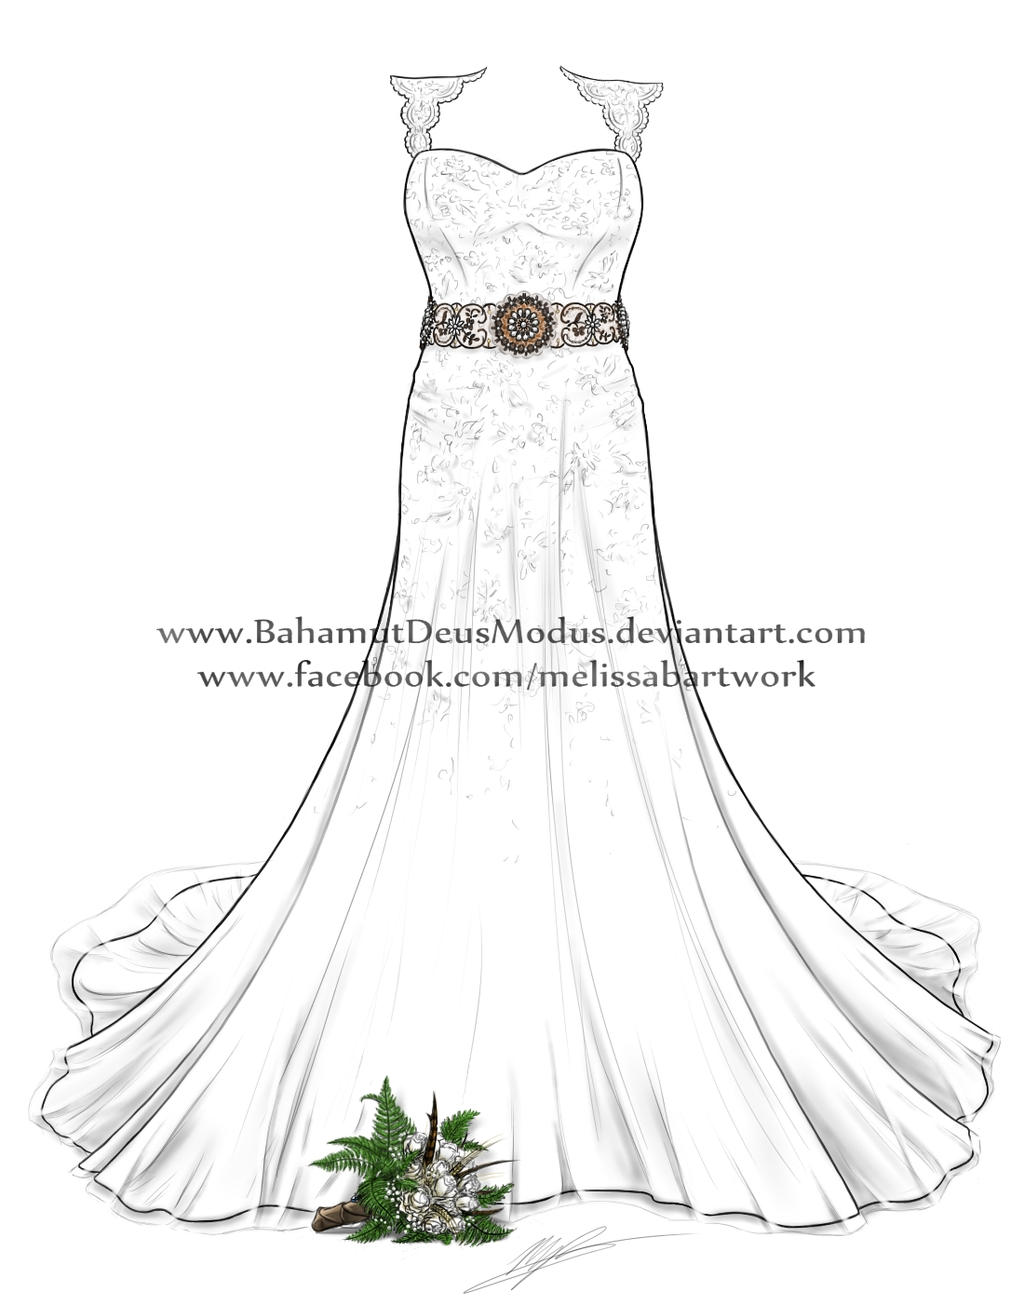 Wedding dress, Tiffany's by BahamutDeusModus